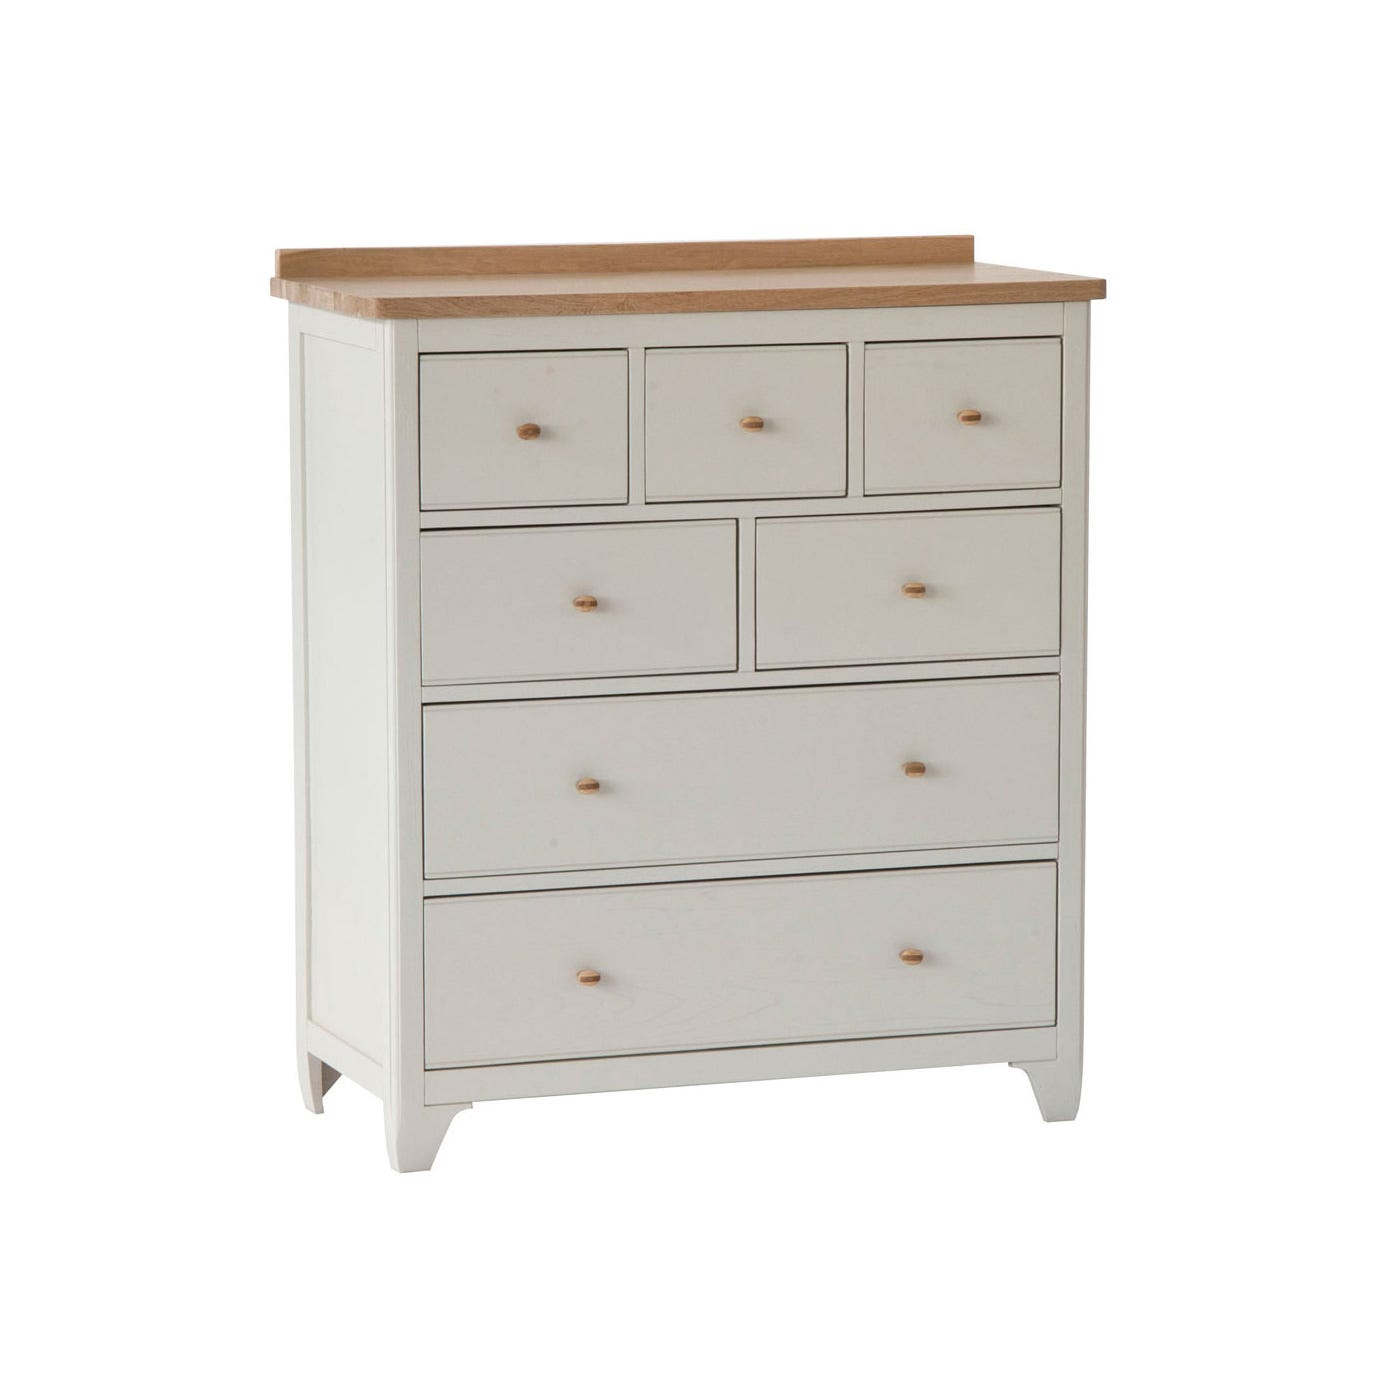 furniture off tall buy s dresser bobs louie drawers drawer dimensions bob